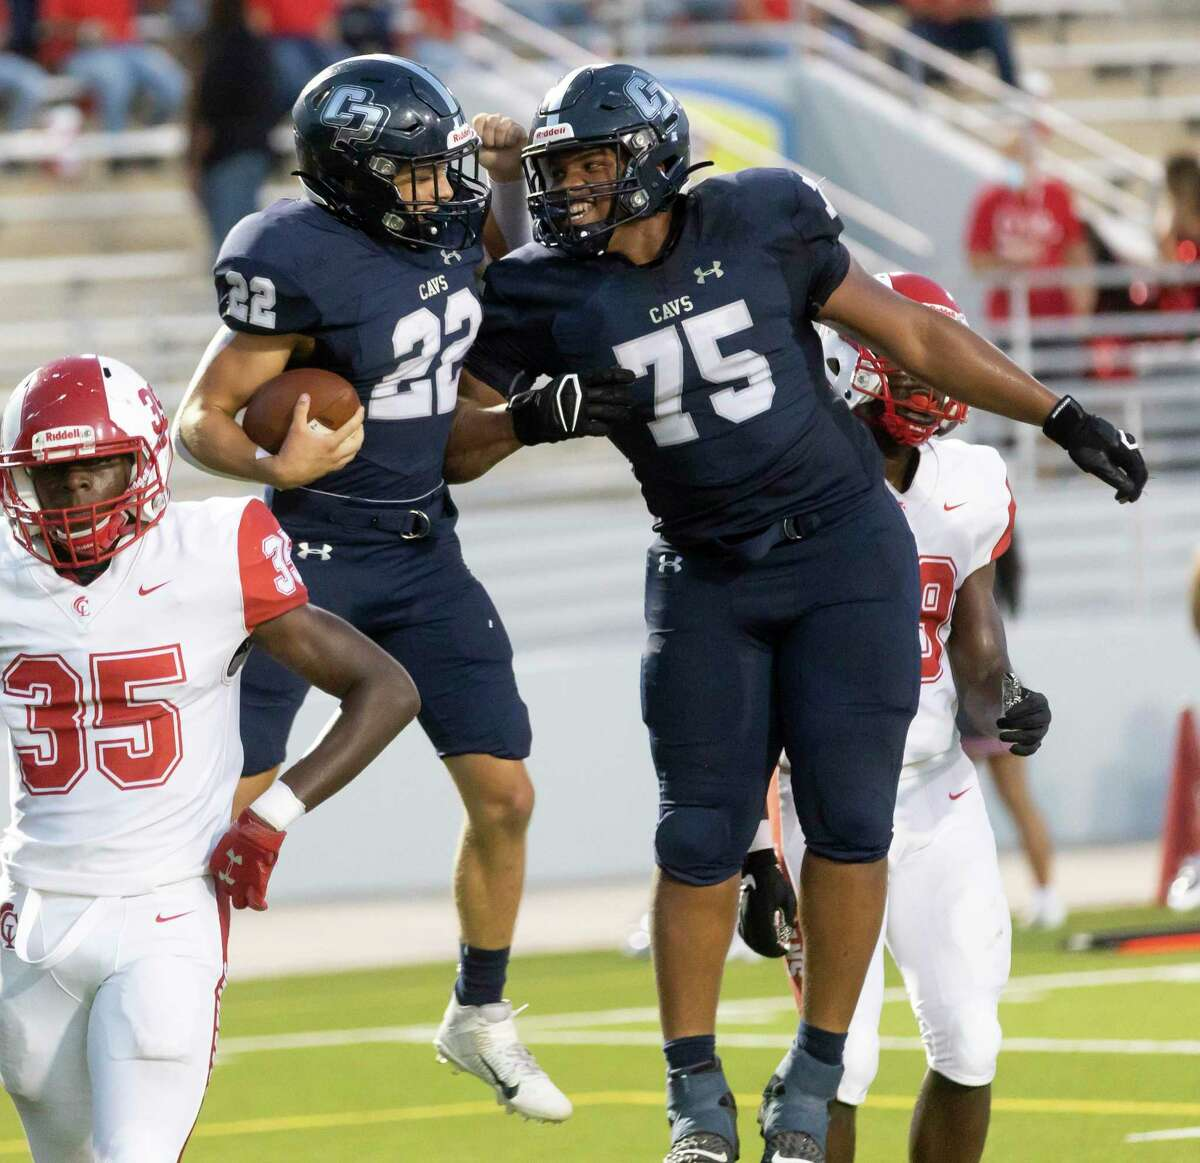 College Park running back Voss Hudson (22) celebrates with offensive lineman Kelan Williams (75) after he scores a touchdown during the second quarter of a non-district football game at Woodforest Bank Stadium, Thursday, Sept. 9, 2021 in Shenandoah.